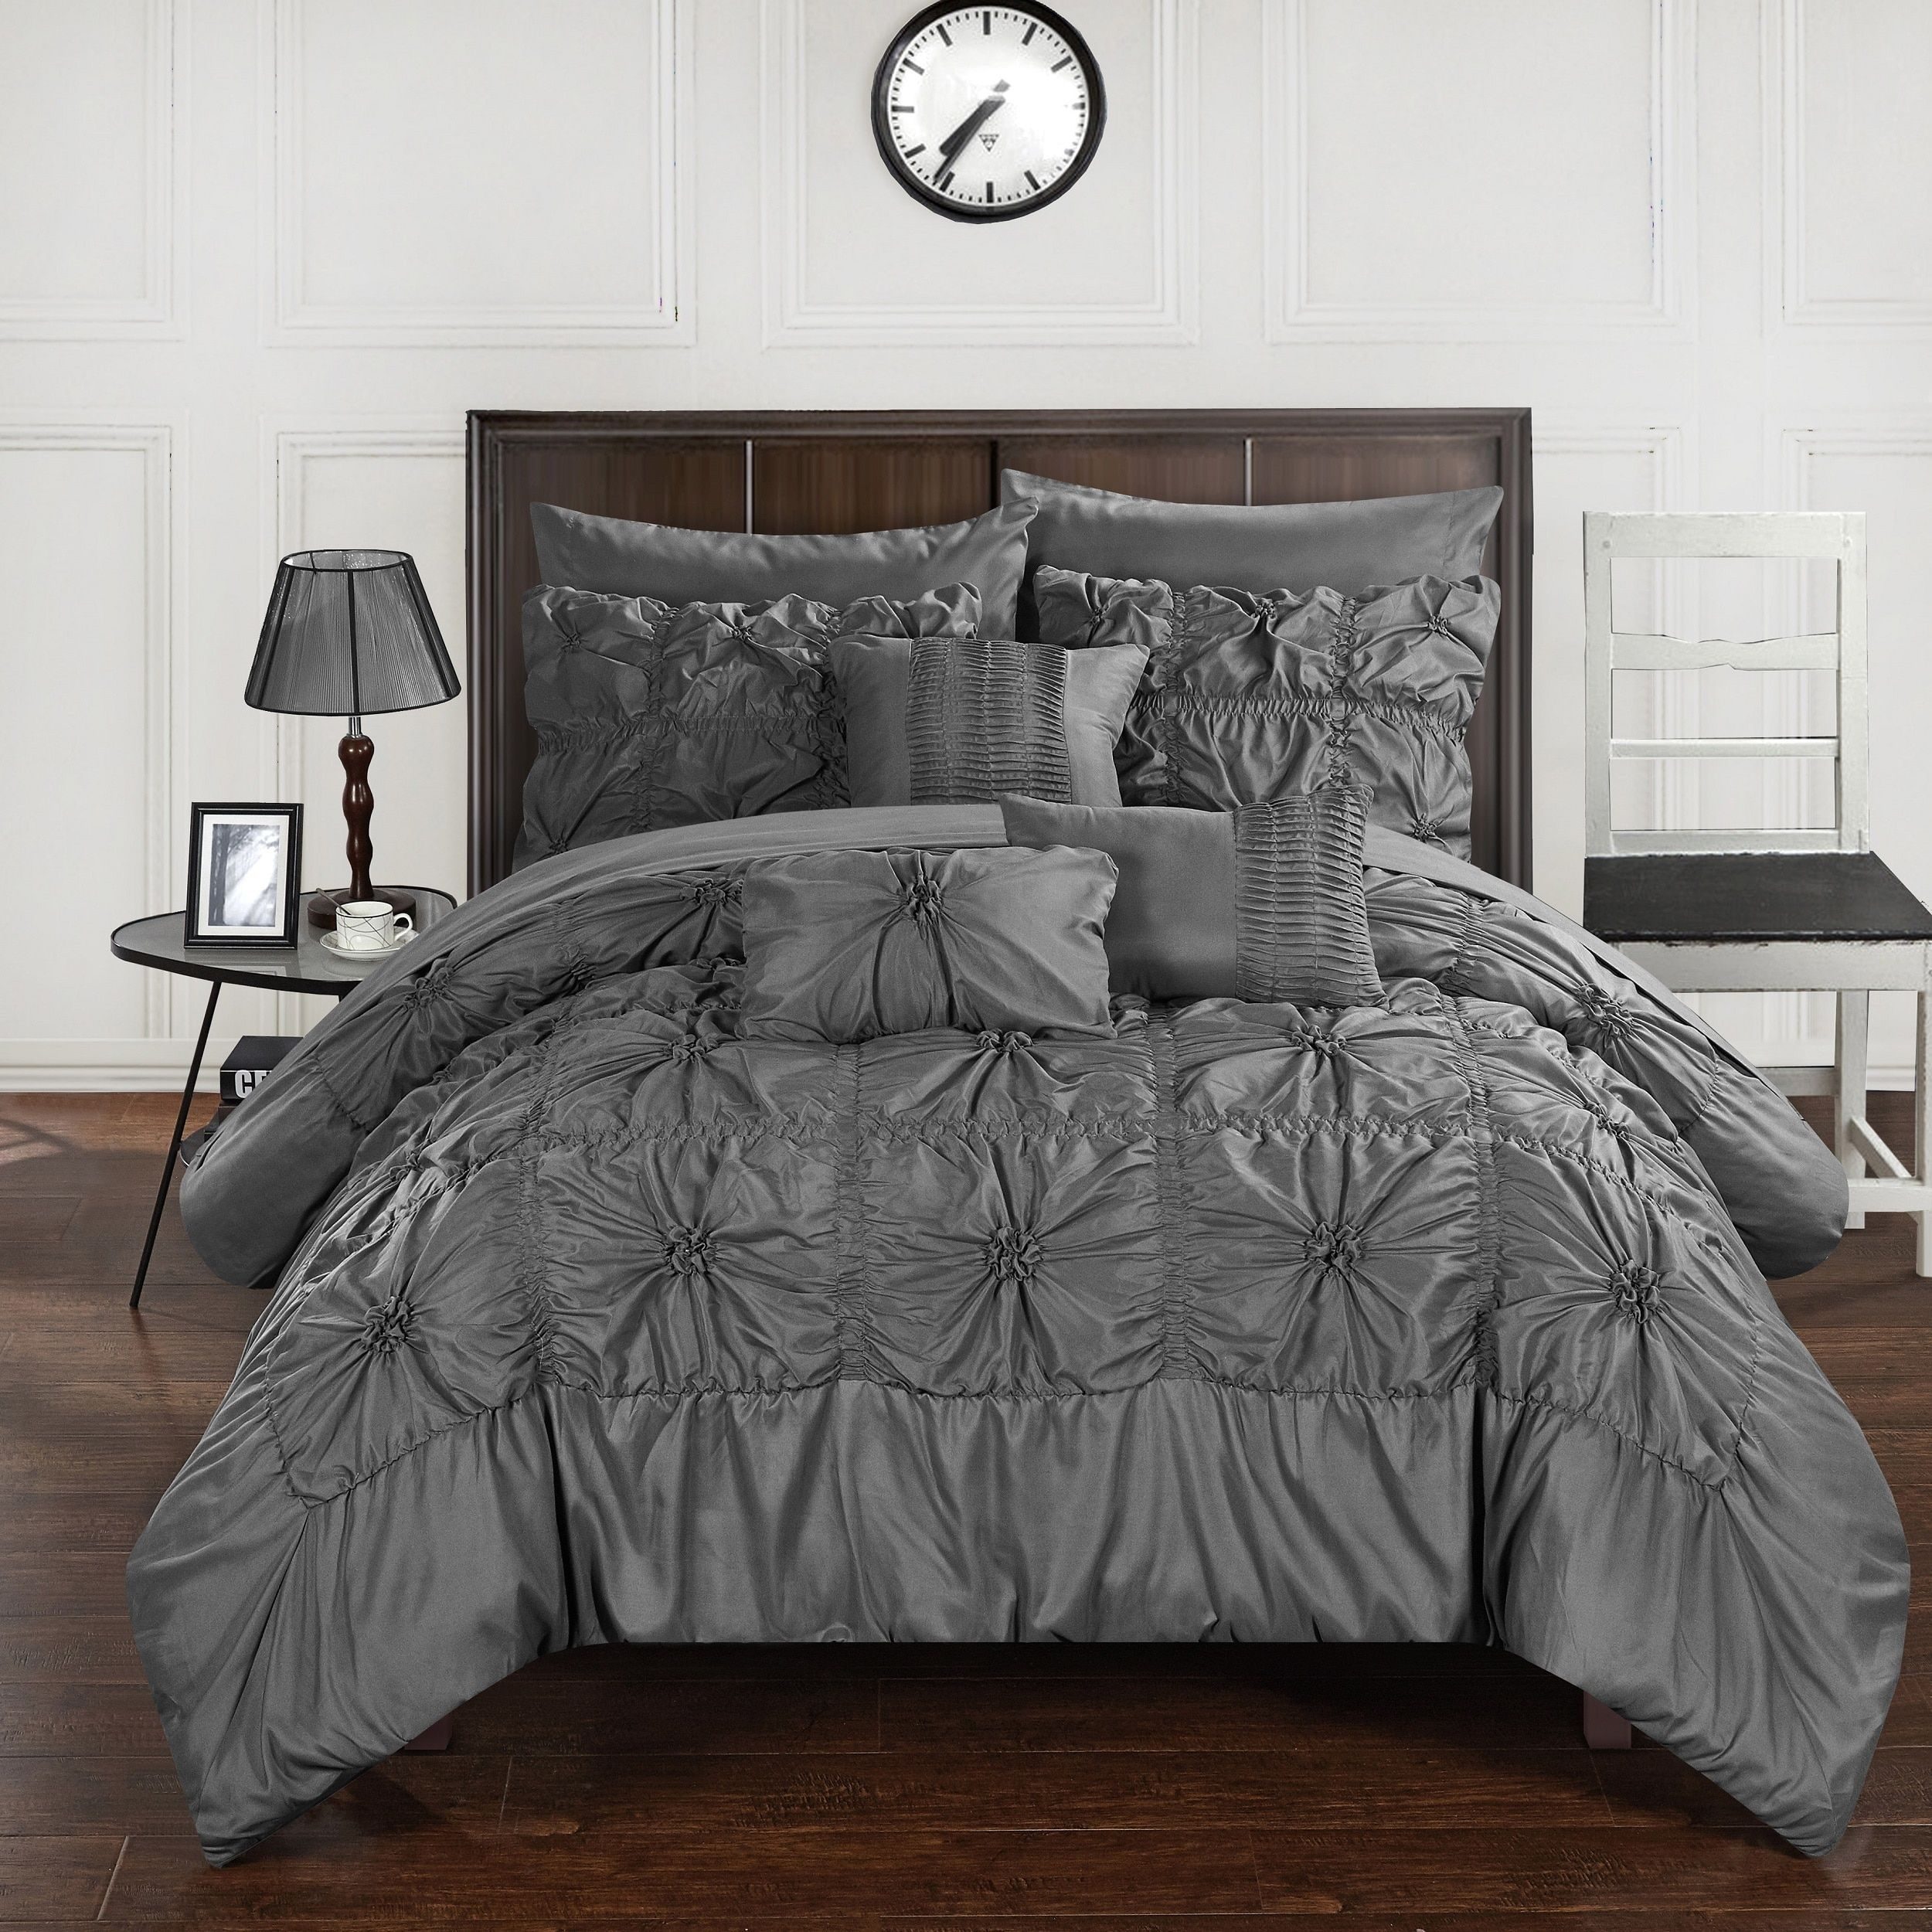 Charcoal Bedding Sets Chic Home 10 Piece Grantfield Bed In A Bag Charcoal Comforter Set